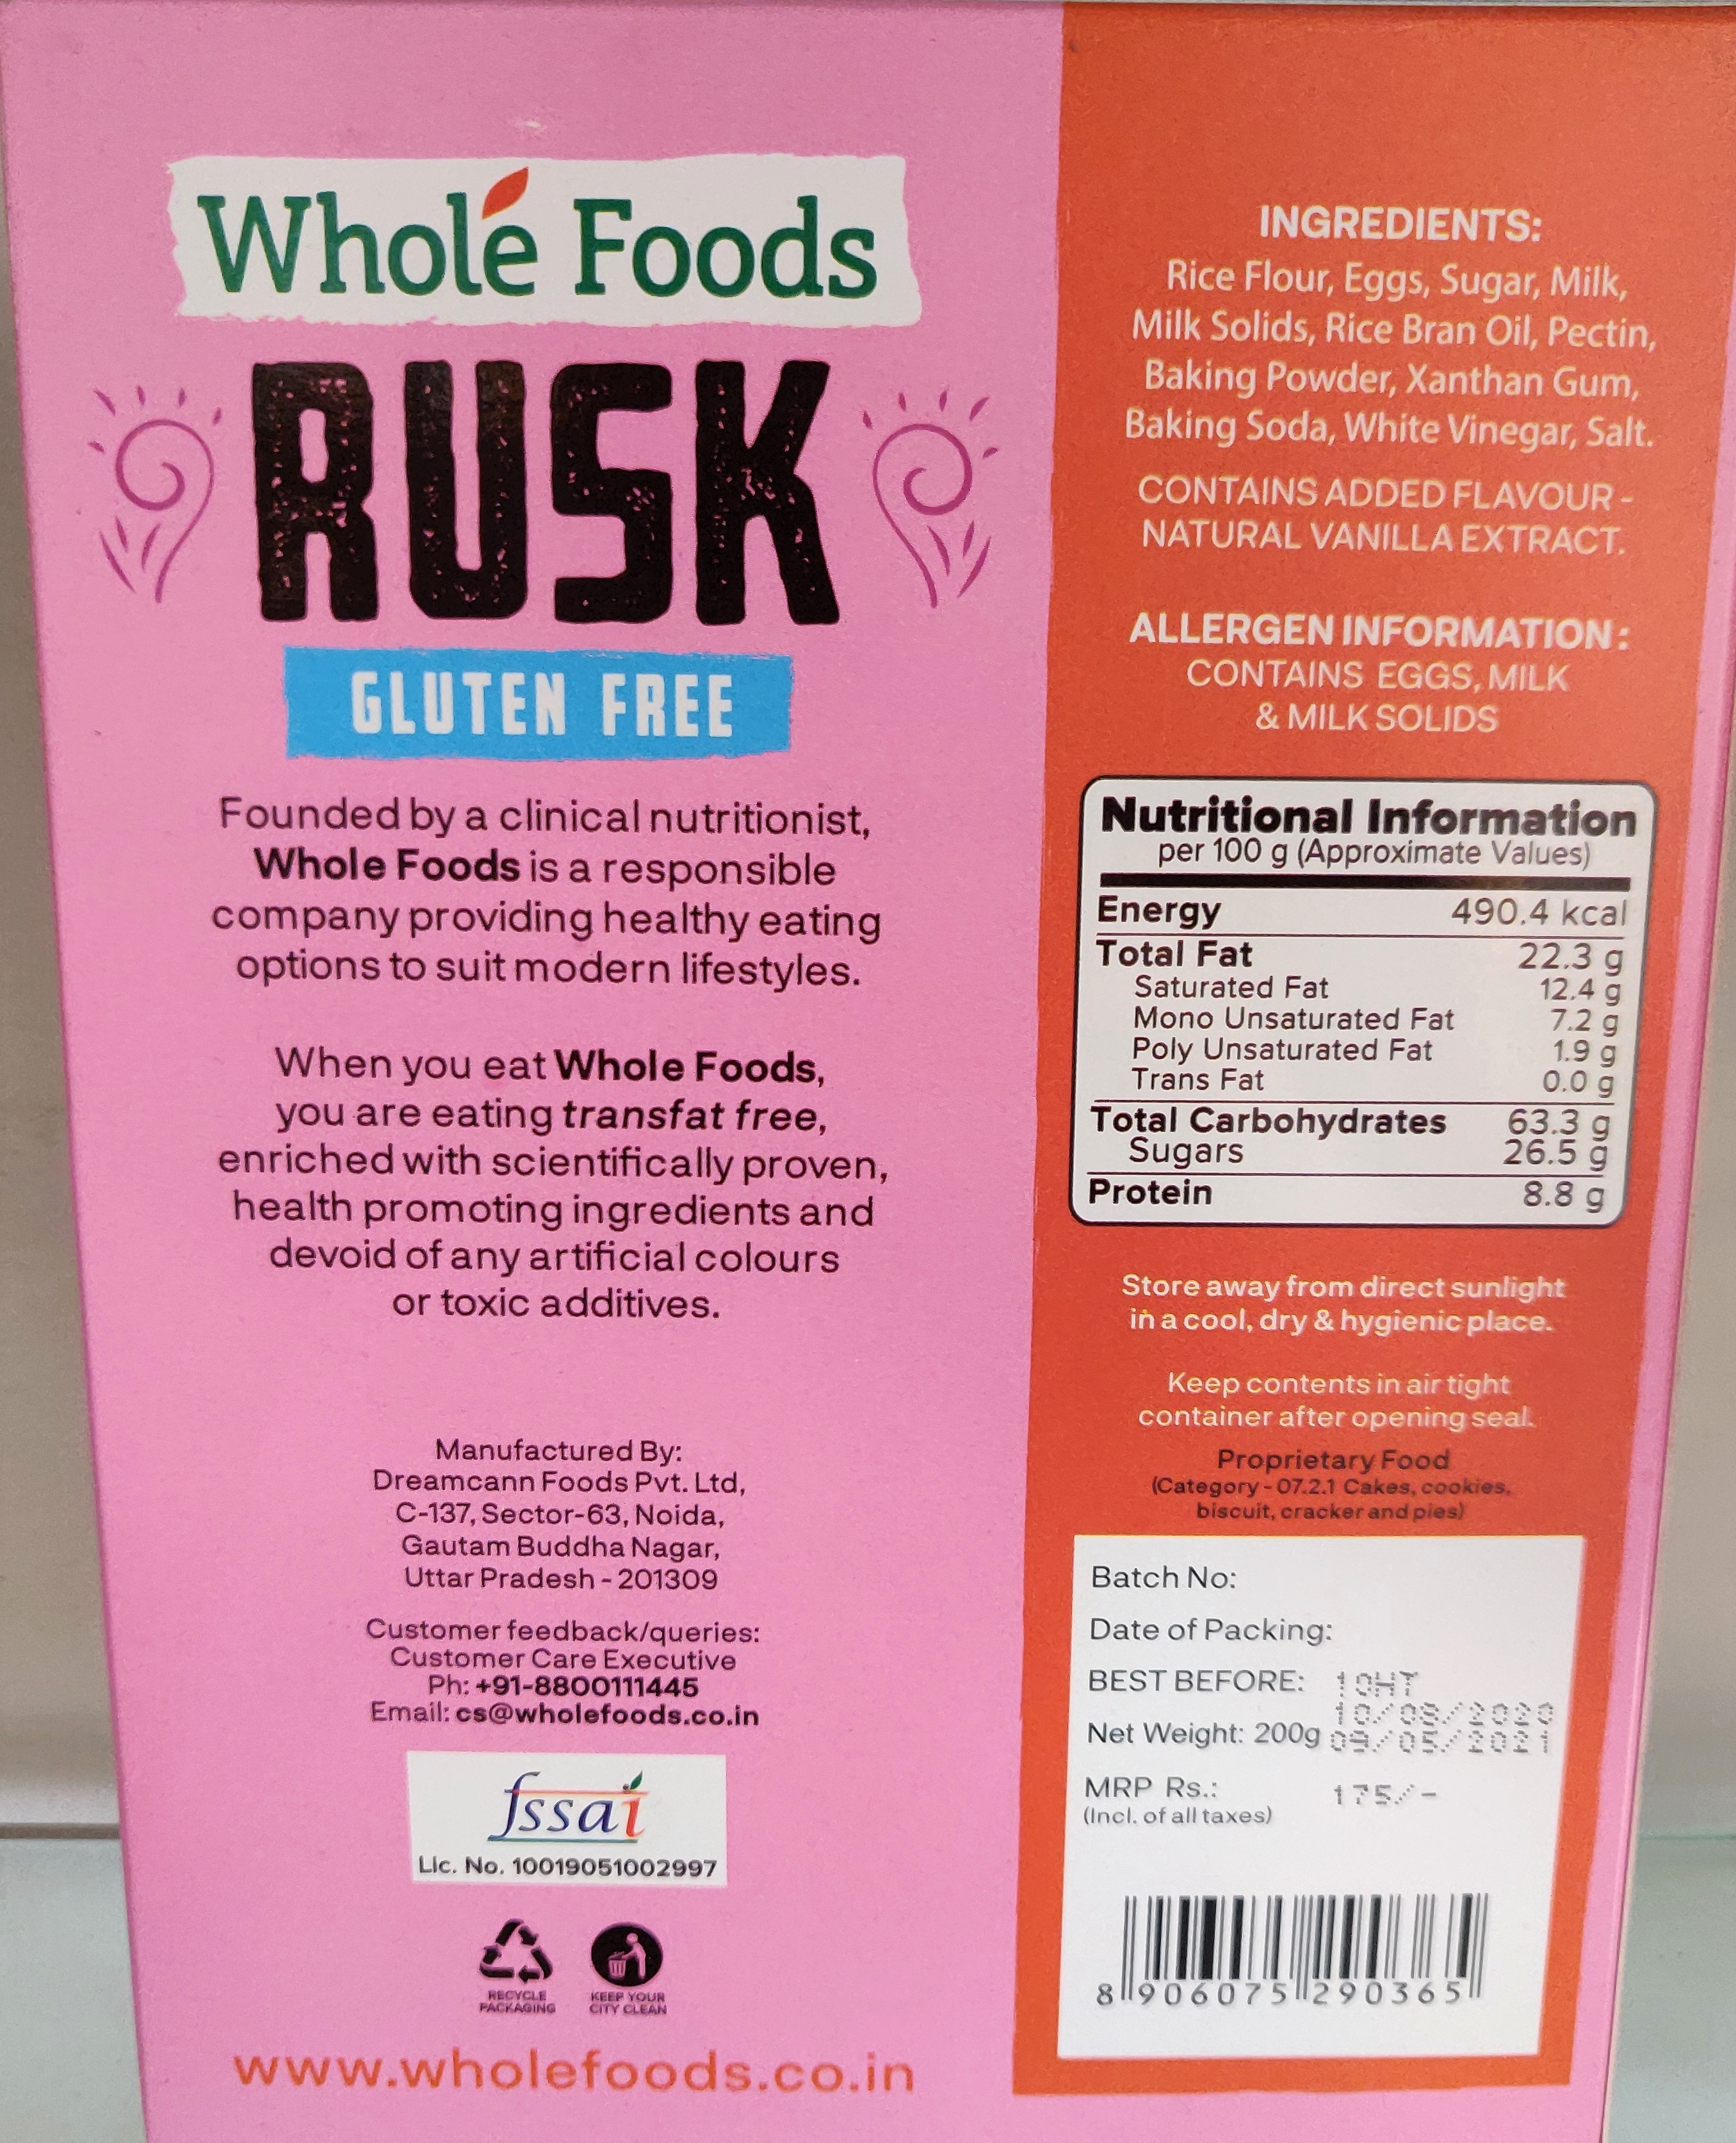 Whole Foods Rusk(with Egg) - Gluten Free